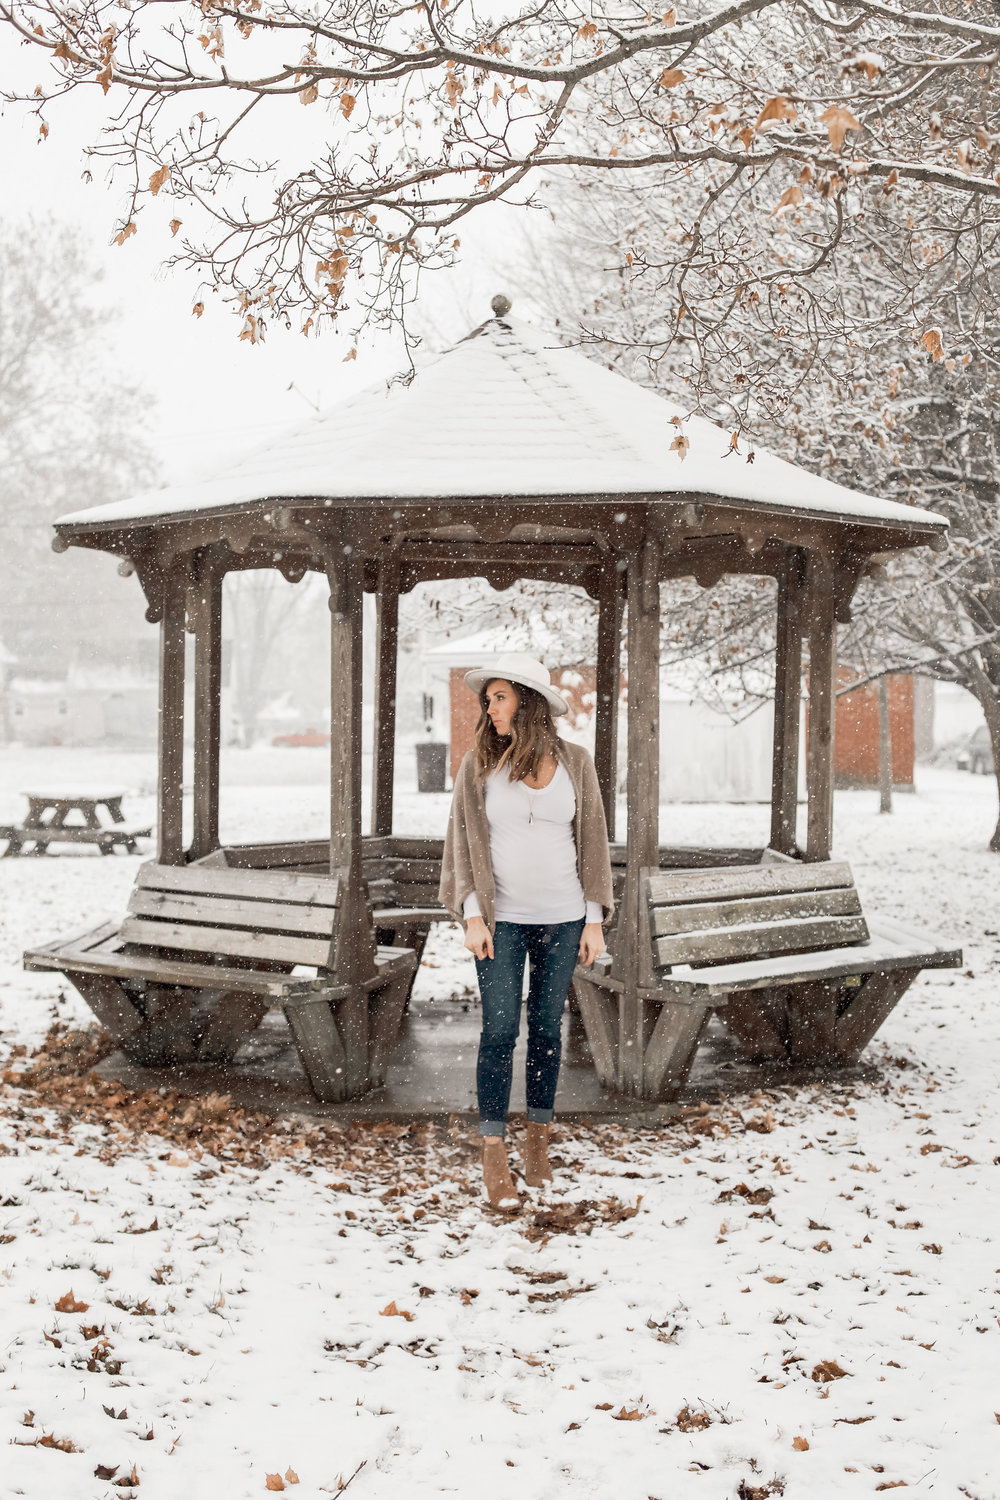 Cozy Winter Style & Giftable Christmas Items